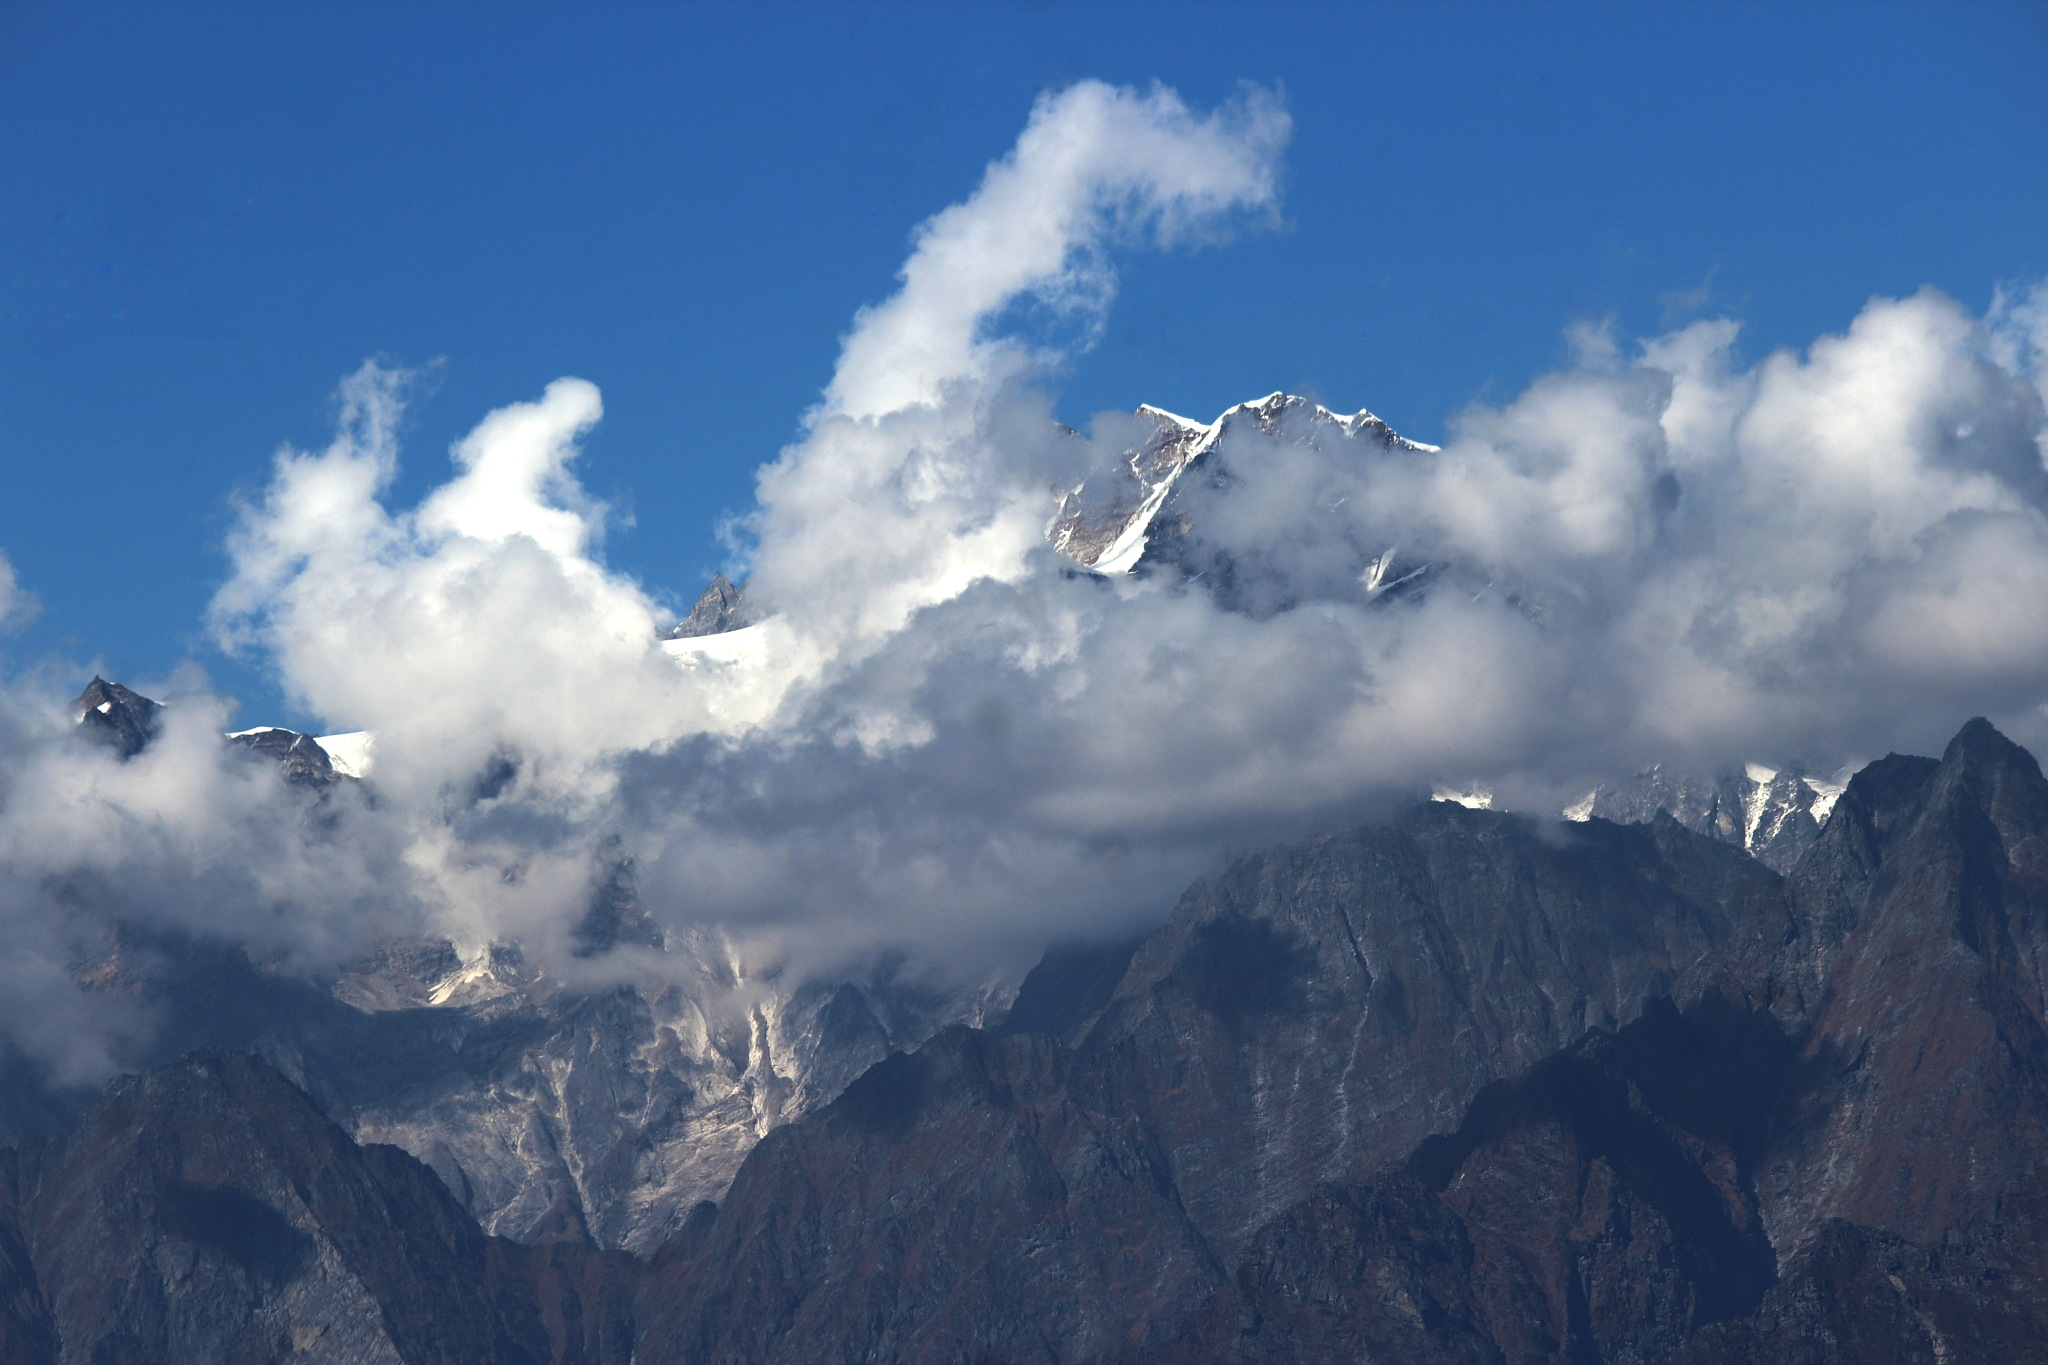 CLOUD HUGGING MOUNTAIN by Susobhan Biswas